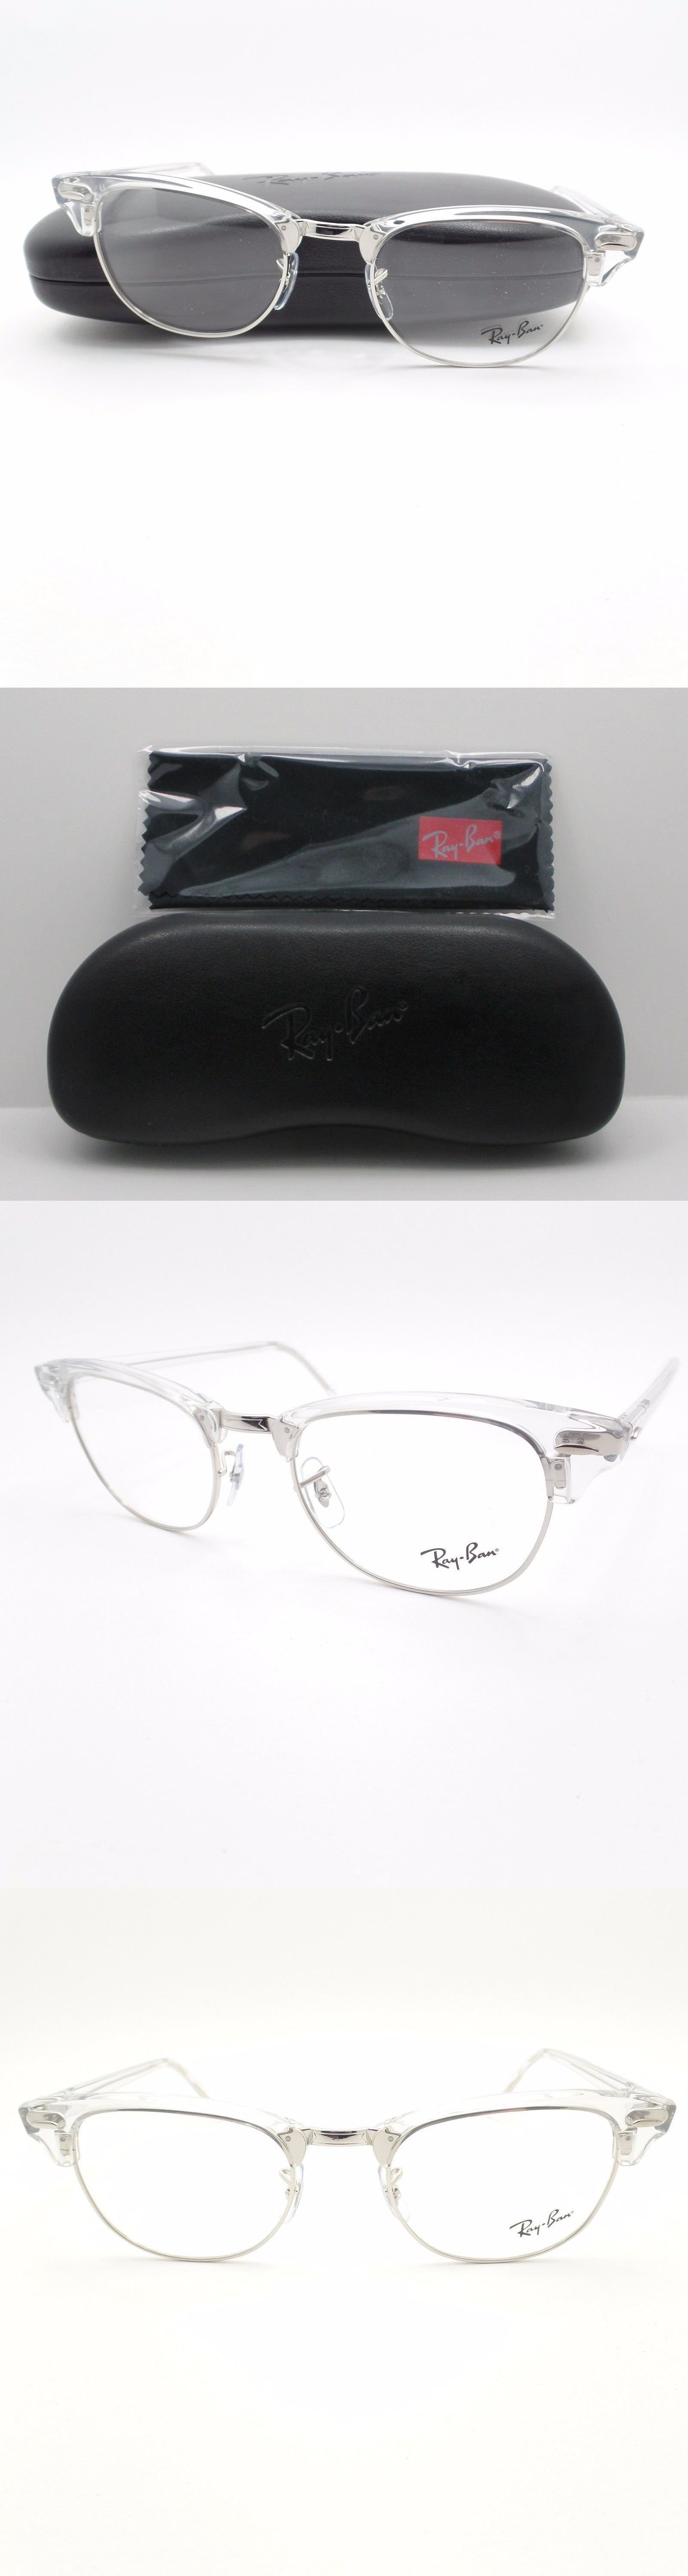 1cd282cffe8 discount code for sunglasses 155189 ray ban clubmaster 5154 2001 white  transparent silver frame new authentic